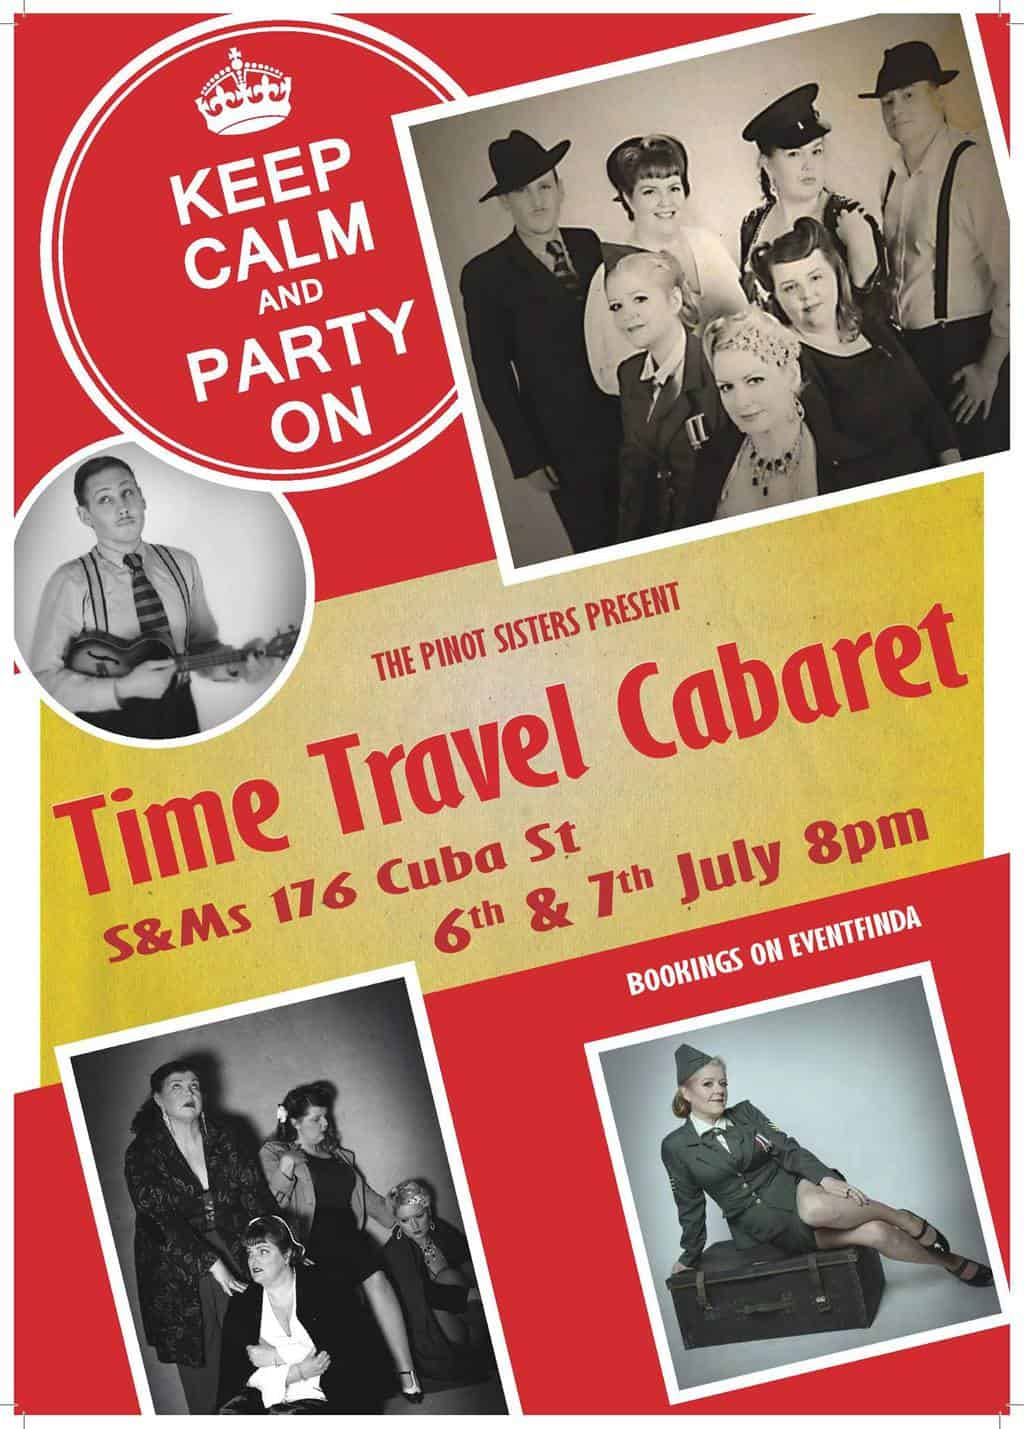 Time Travel Cabaret